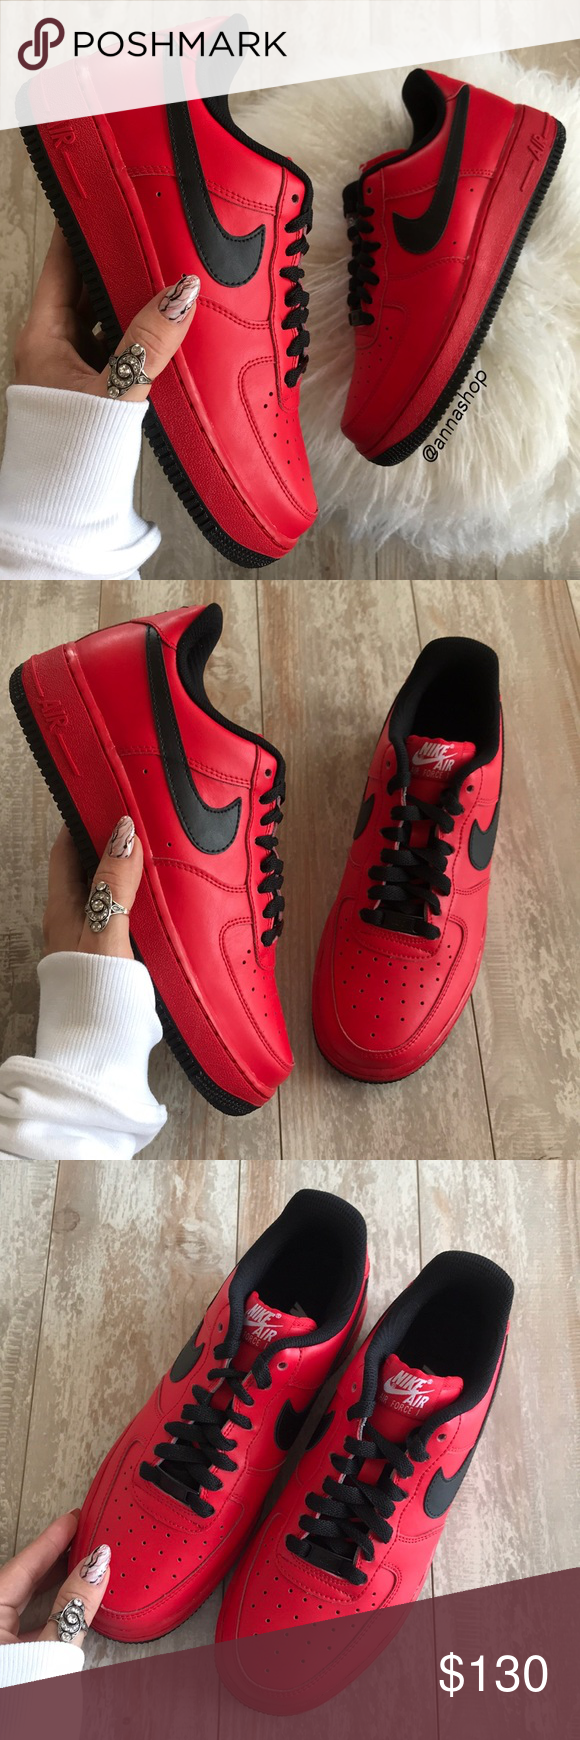 Nwt Nike Id Air Force 1 Custom Red On Black Clothes Design